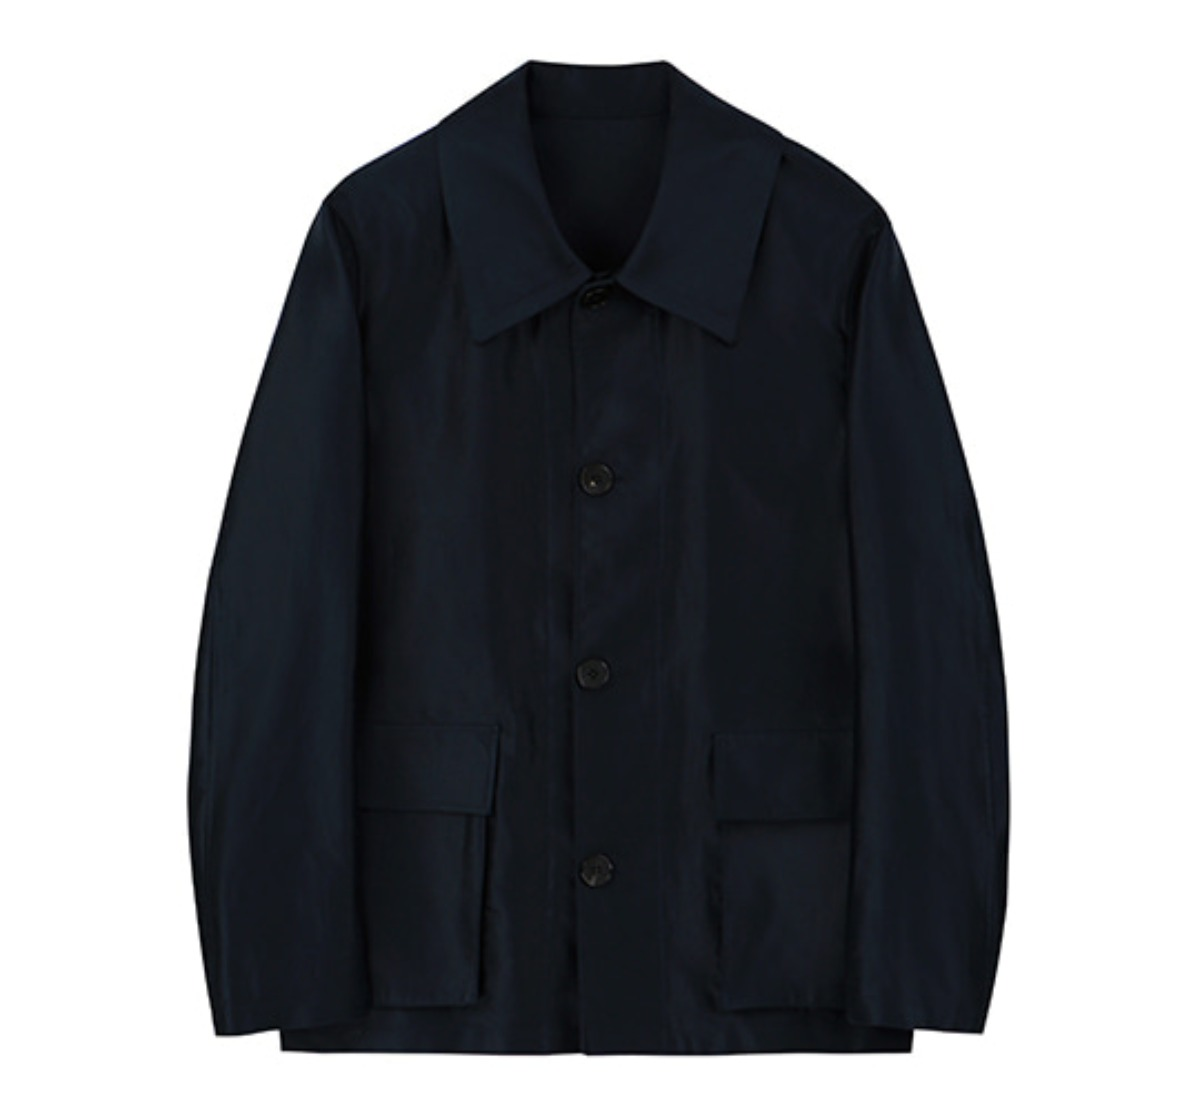 [ART IF ACTS] FIELD JACKET 'NAVY'